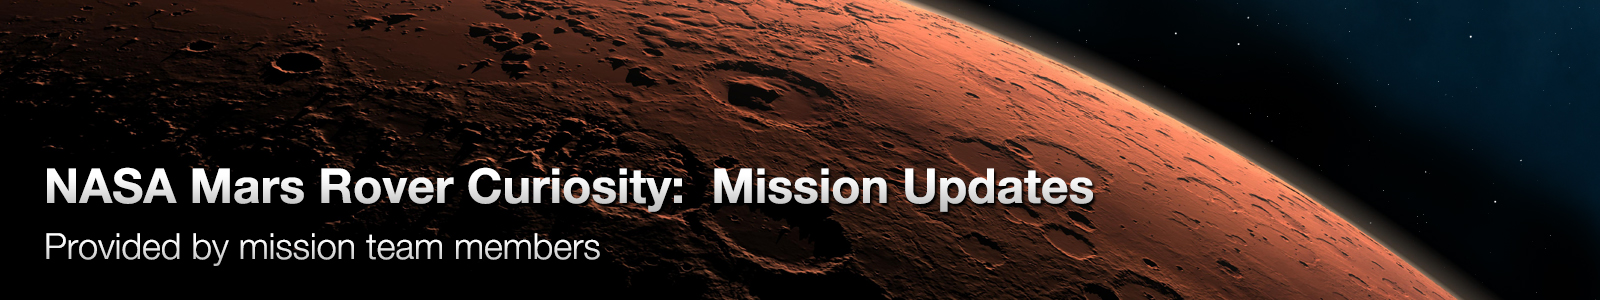 mars mission update - photo #37